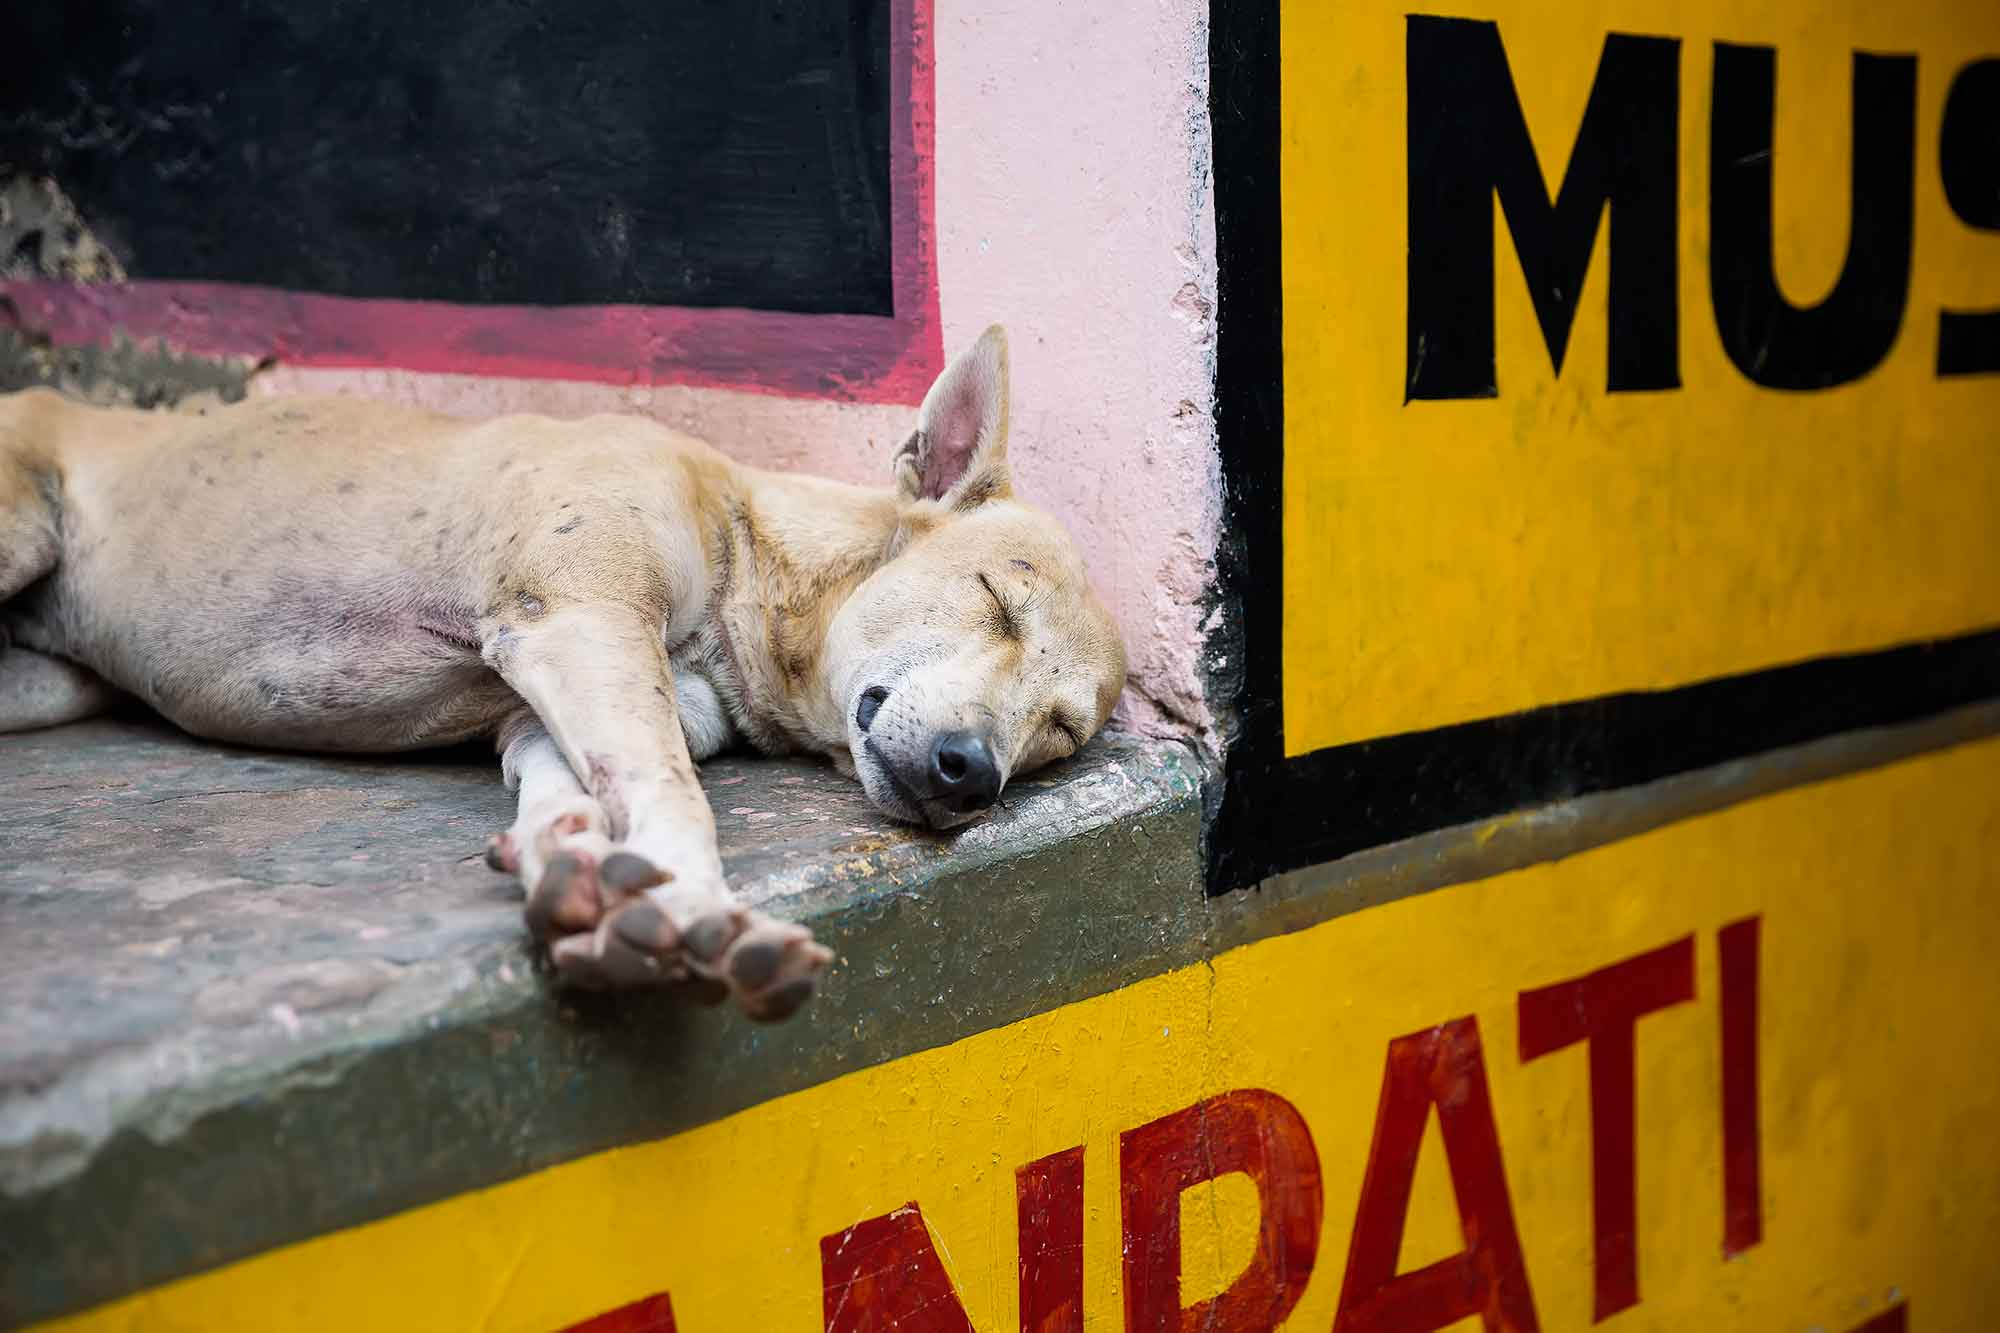 sleeping-dog-streets-varanasi-india